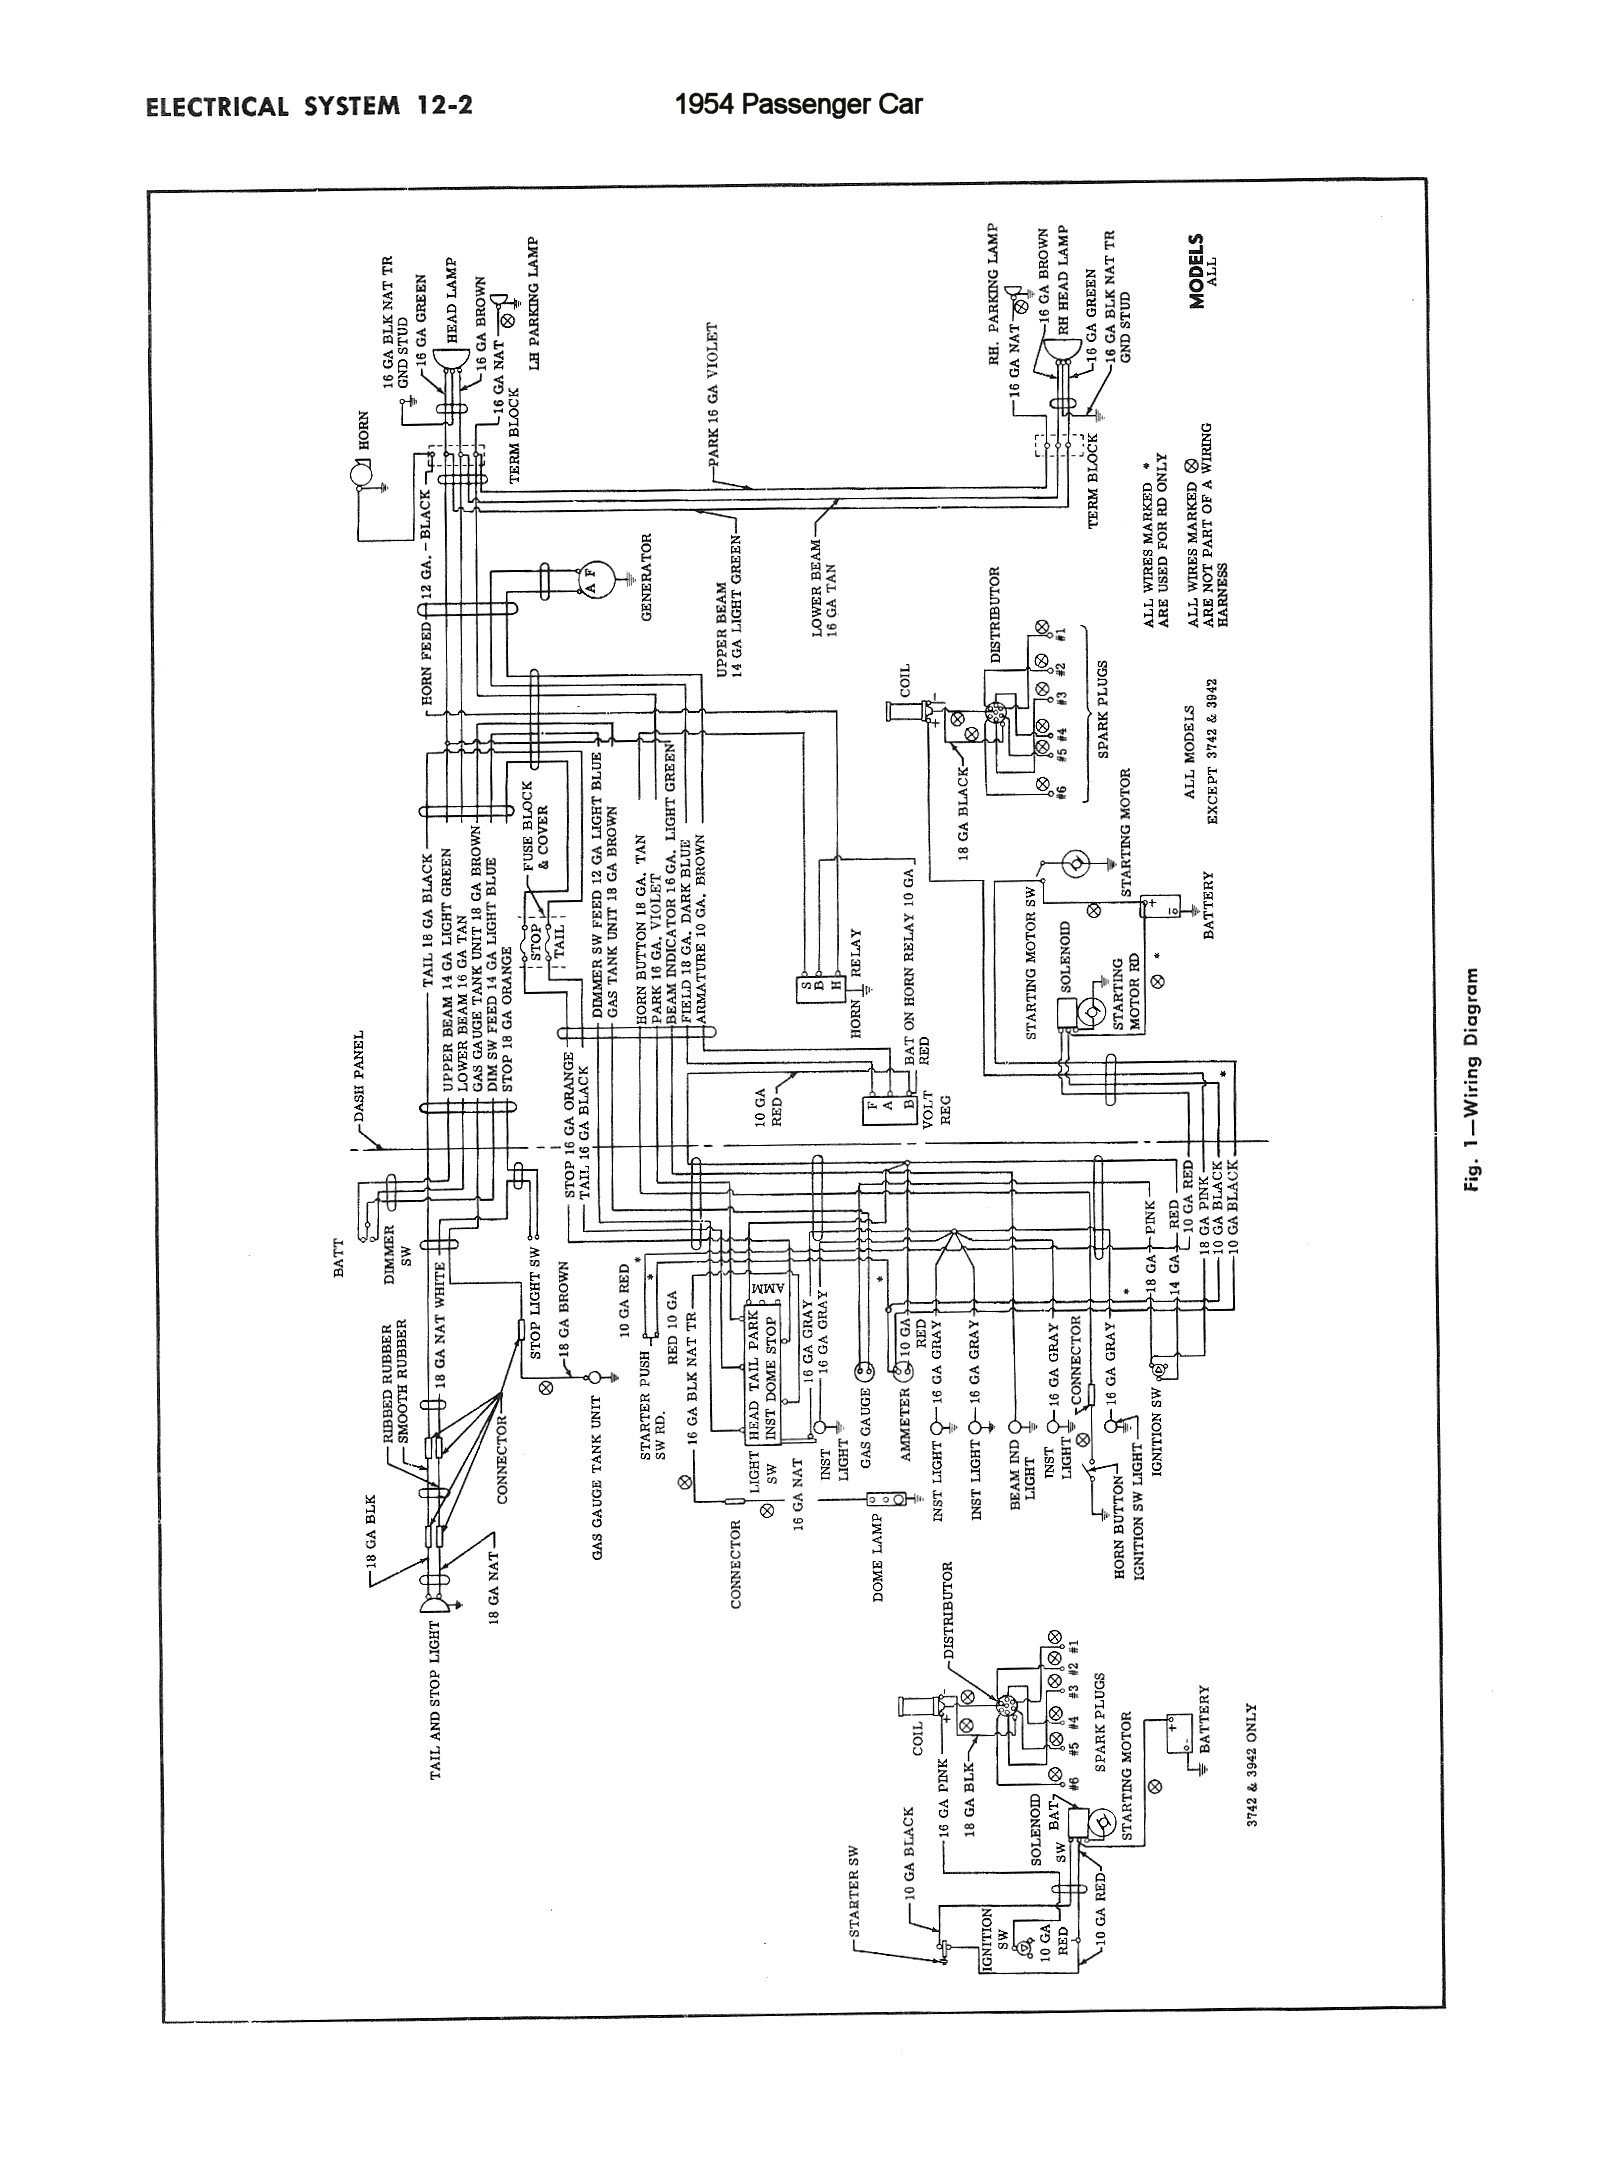 hight resolution of chevy wiring diagrams 1966 ford truck instrument diagram 1954 truck wiring 1954 passenger car wiring